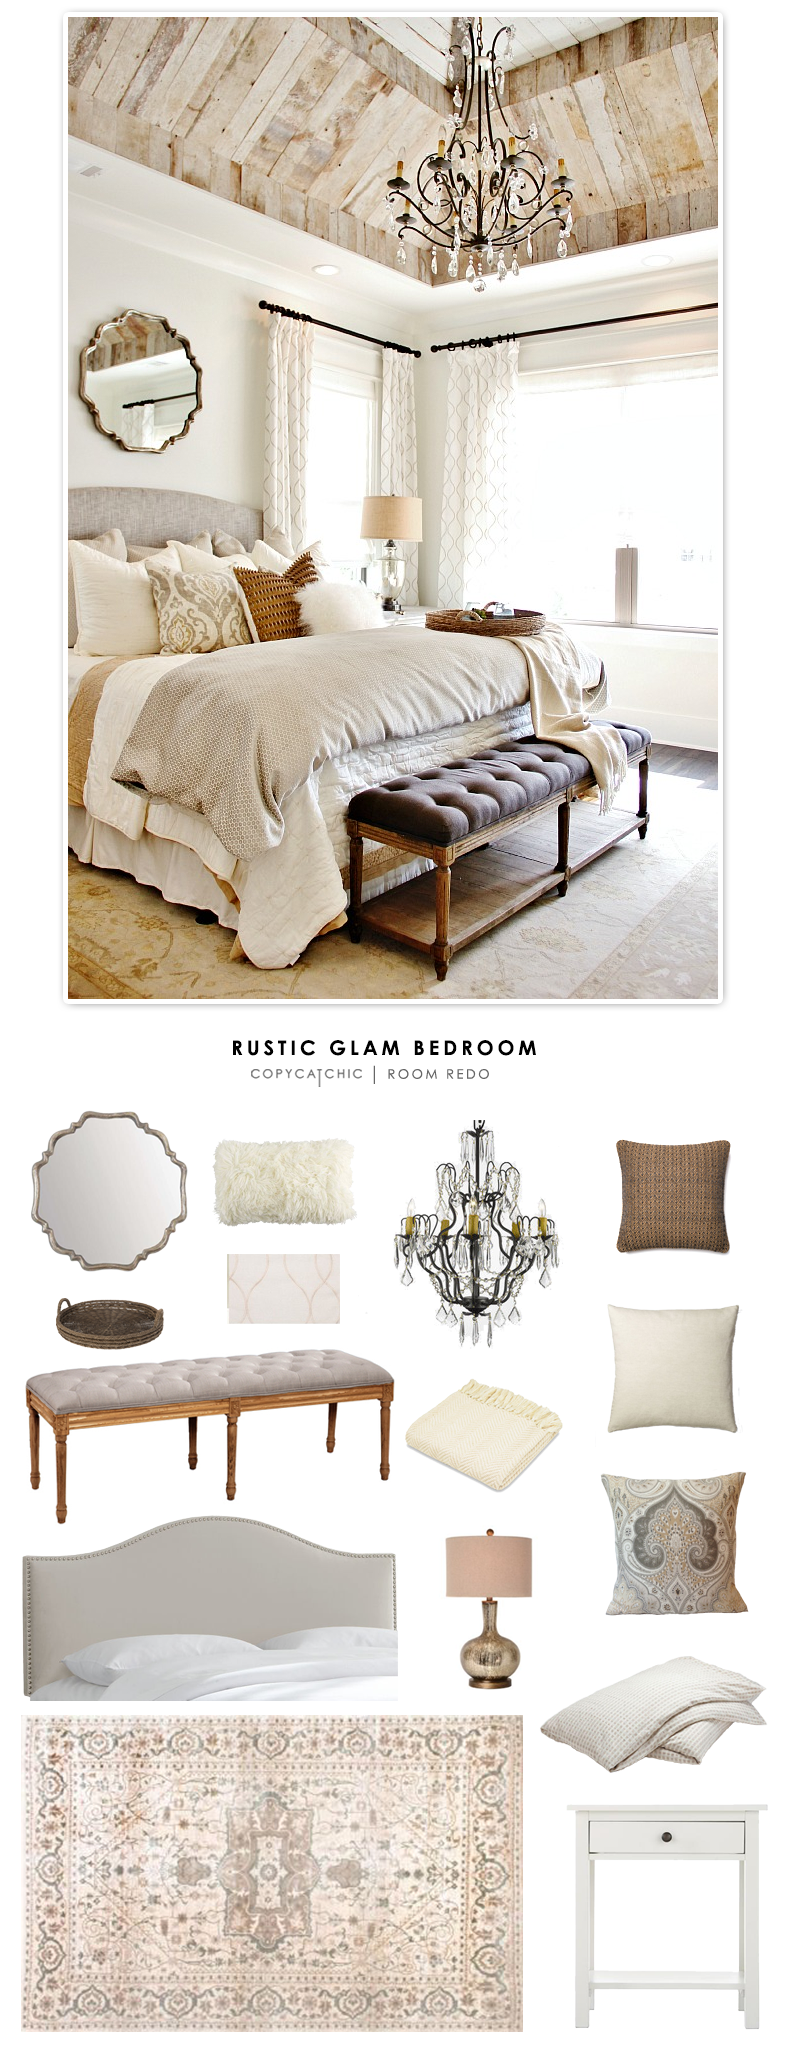 Room Redo Rustic Glam Bedroom For Less Copycatchic